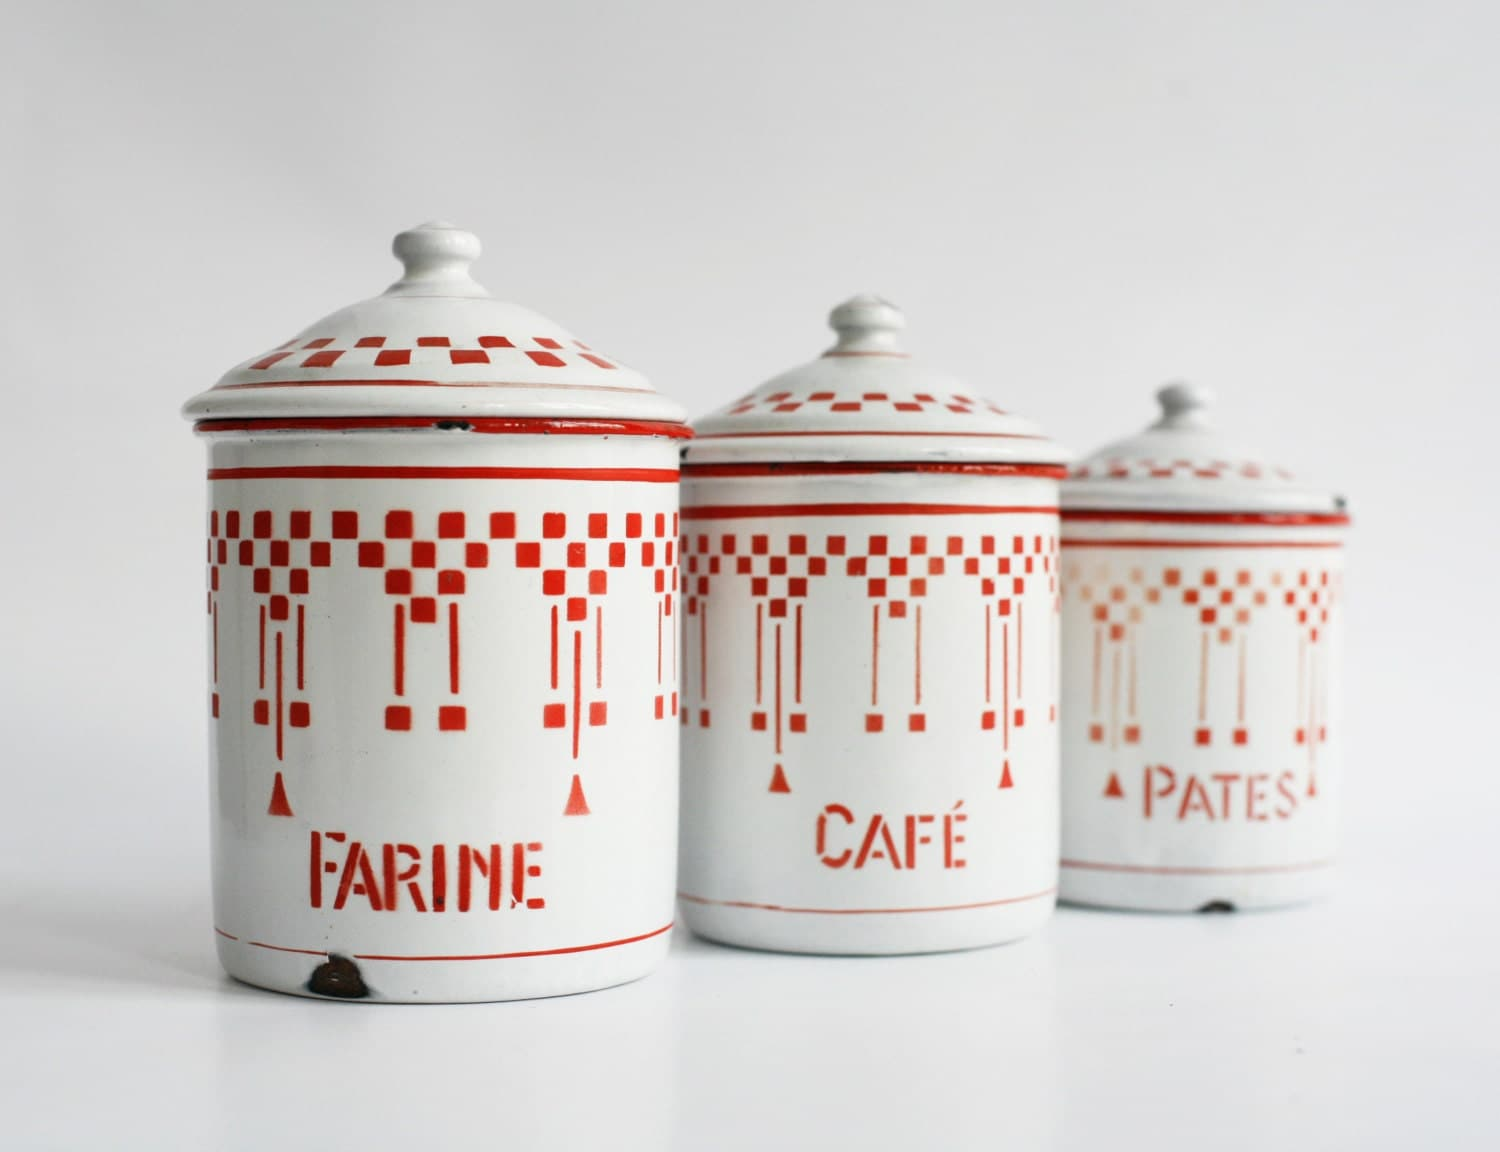 3 kitchen canisters french enamel storage jars red checkered